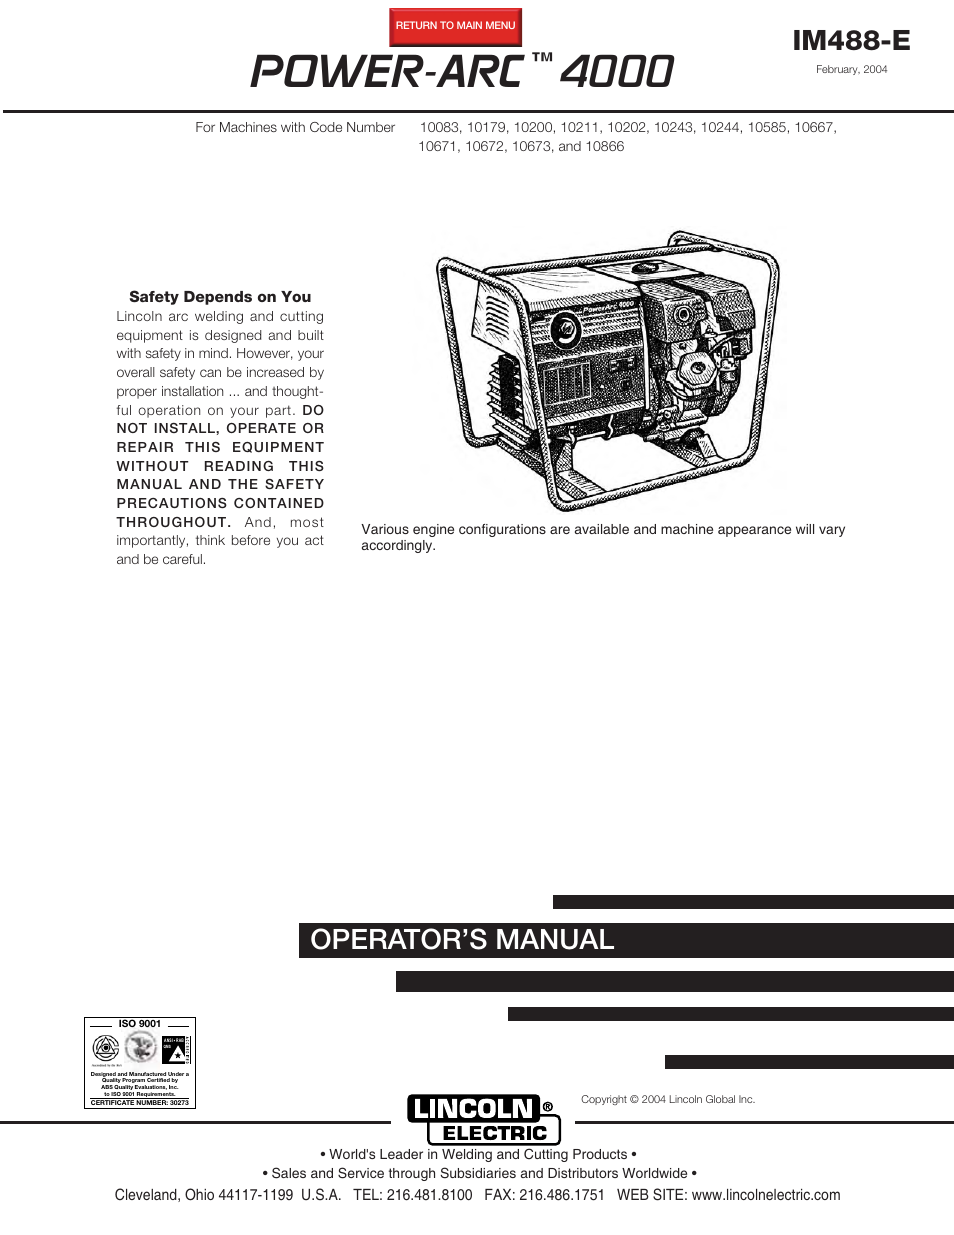 Lincoln Electric Power Arc 4000 User Manual 52 Pages Diagram And Parts List For Craftsman Welderparts Model 113201440